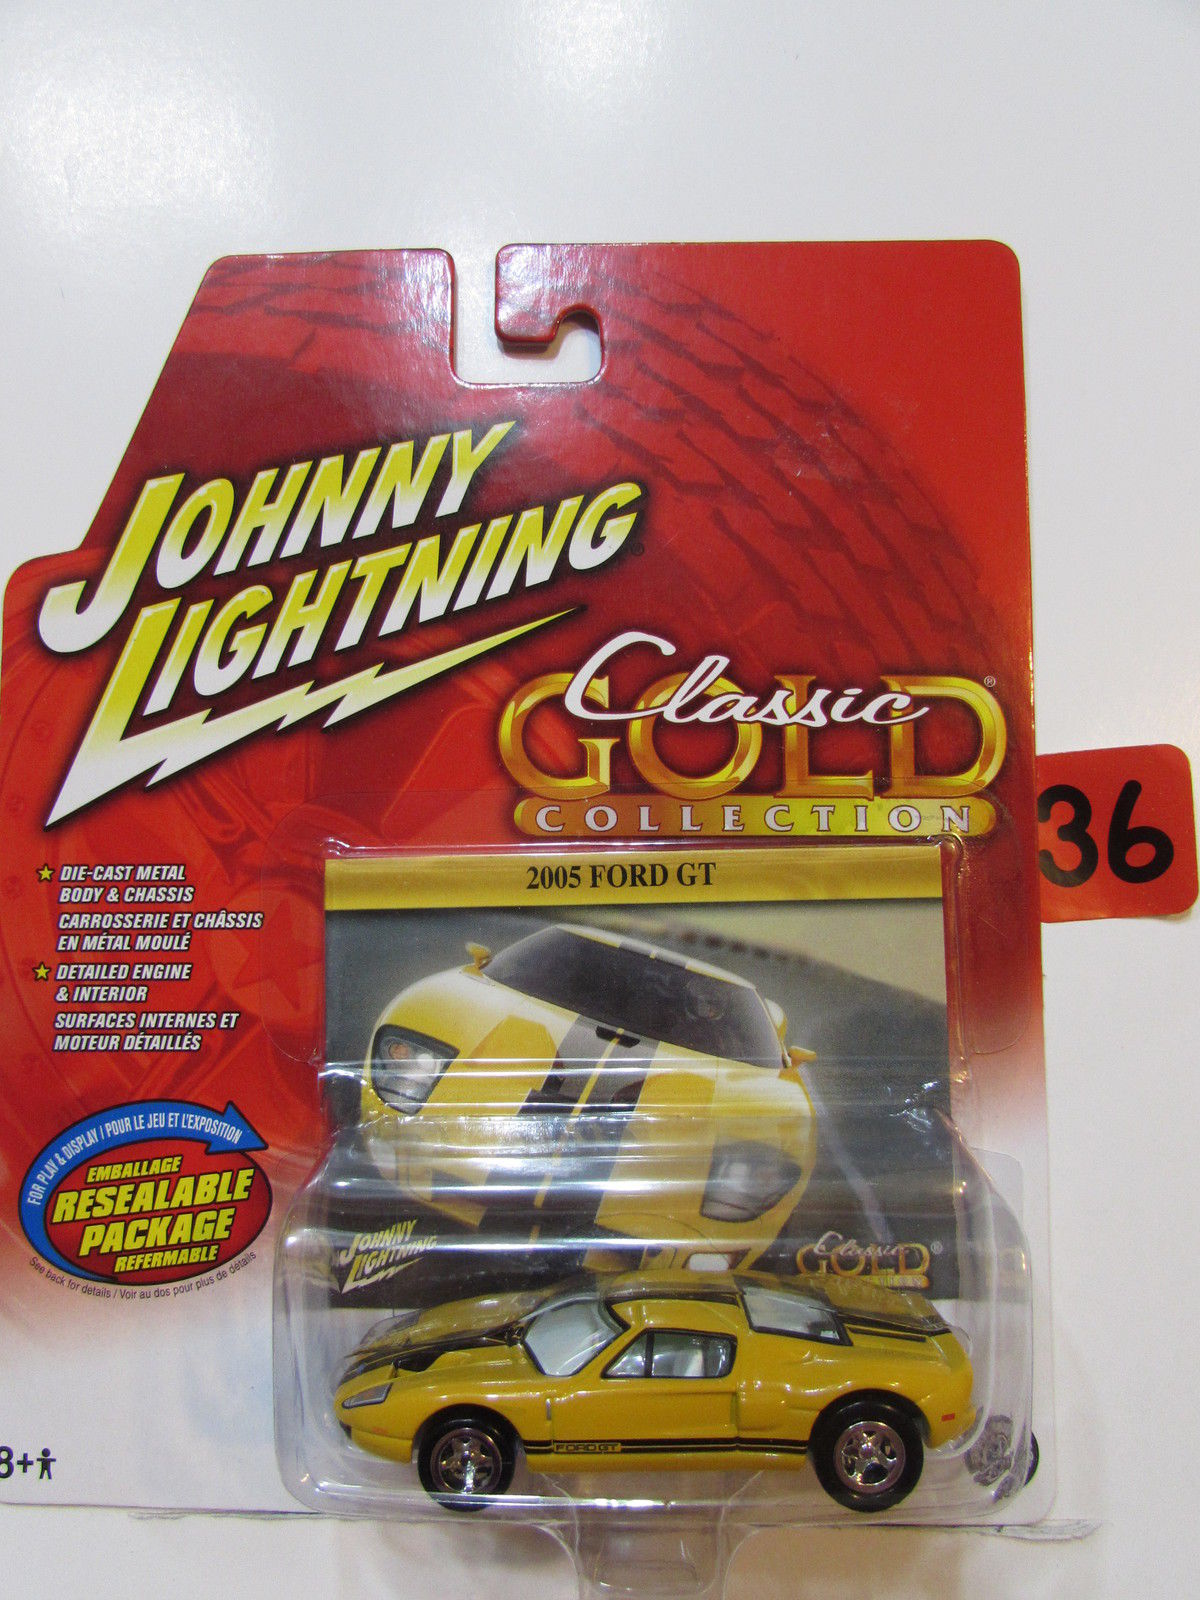 JOHNNY LIGHTNING 2005 CLASIC GOLD COLLECTION 2005 FORD GT WHITE LIGHTNING